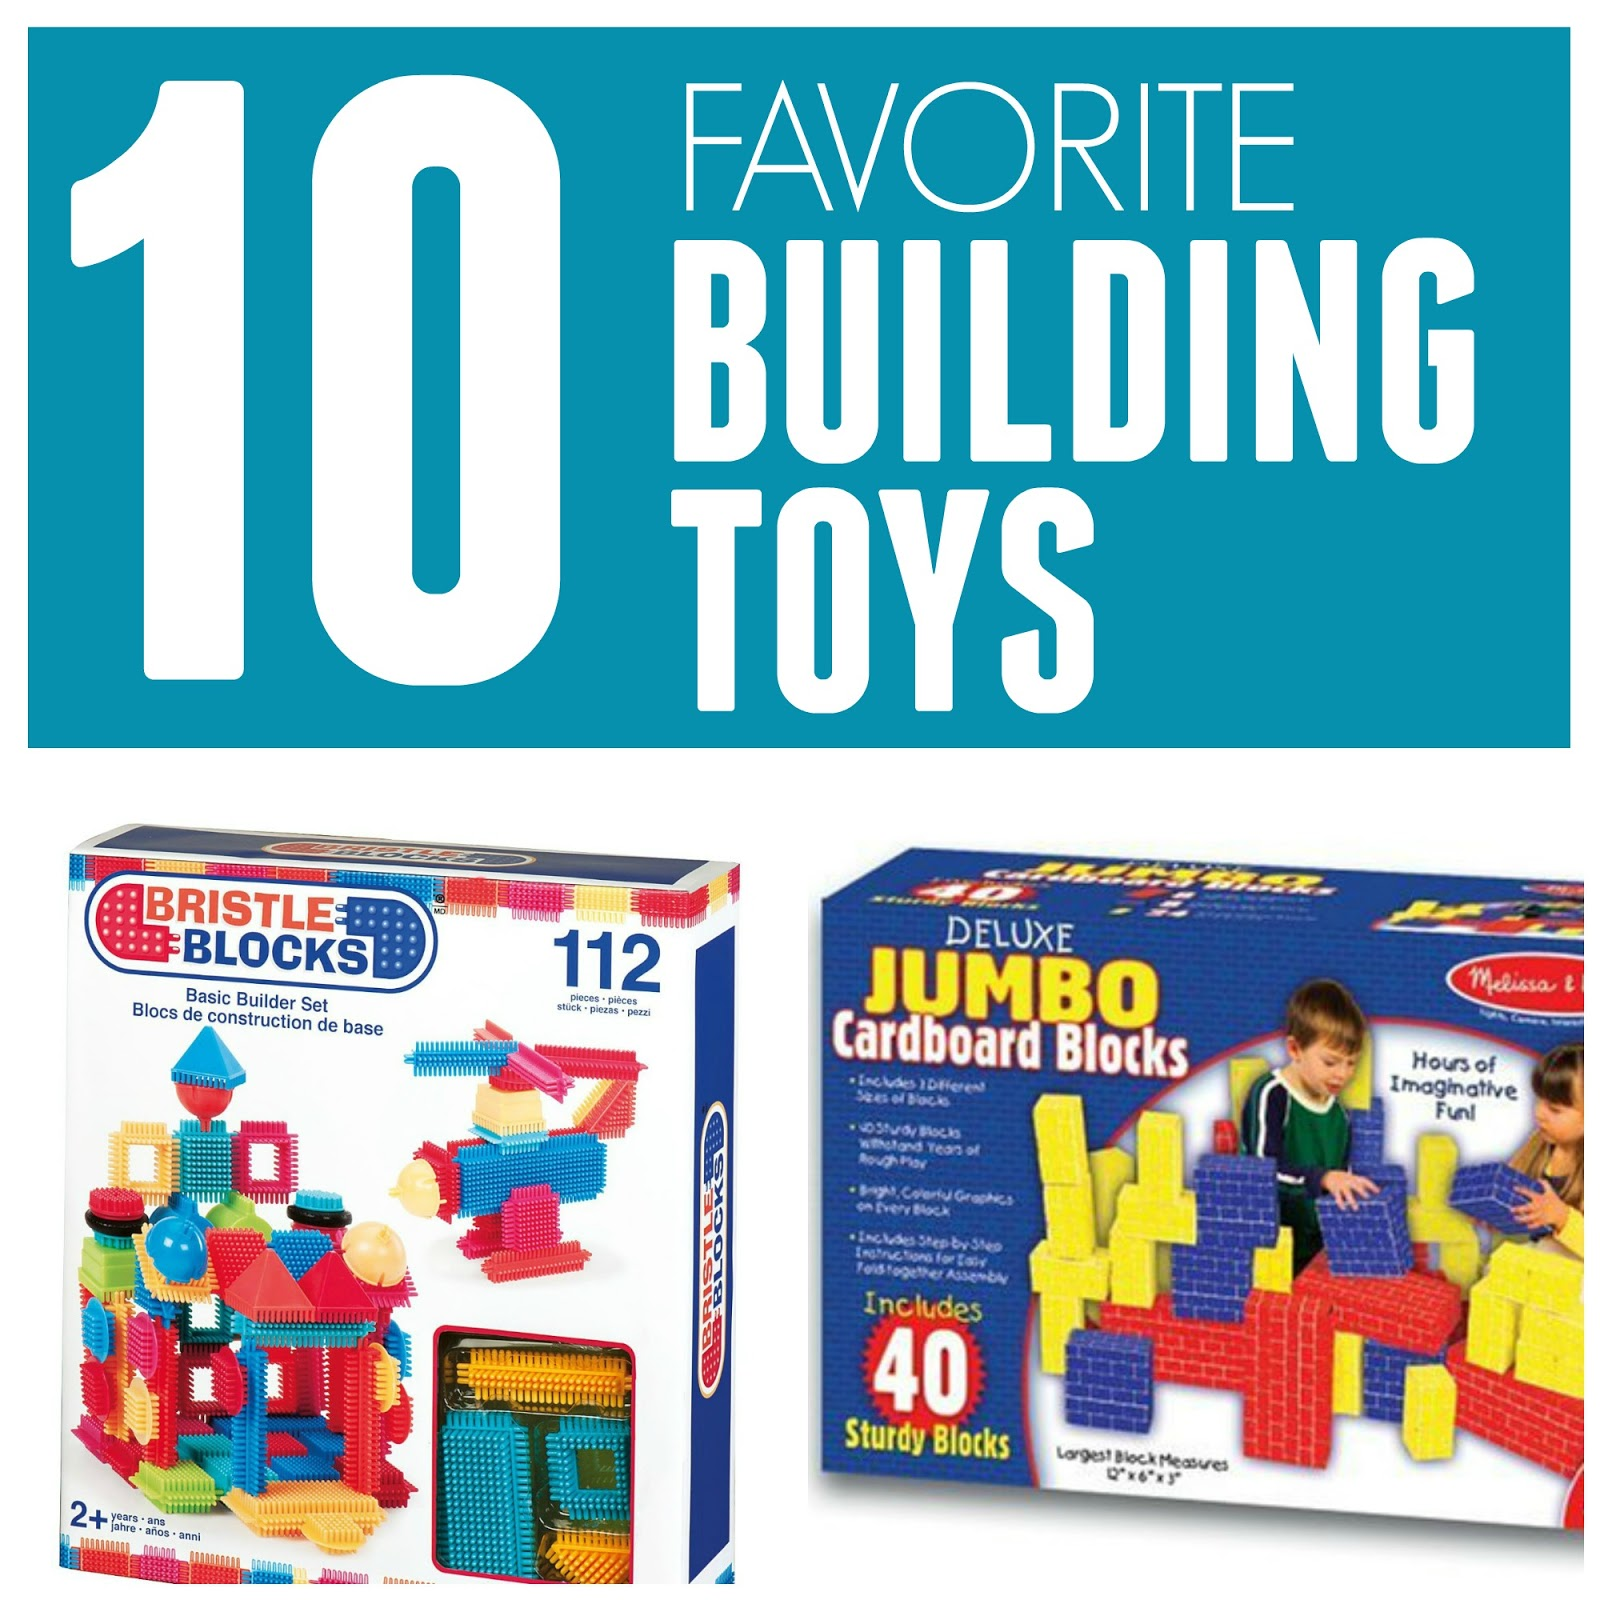 Toddler Approved 10 Favorite Building Toys for Kids